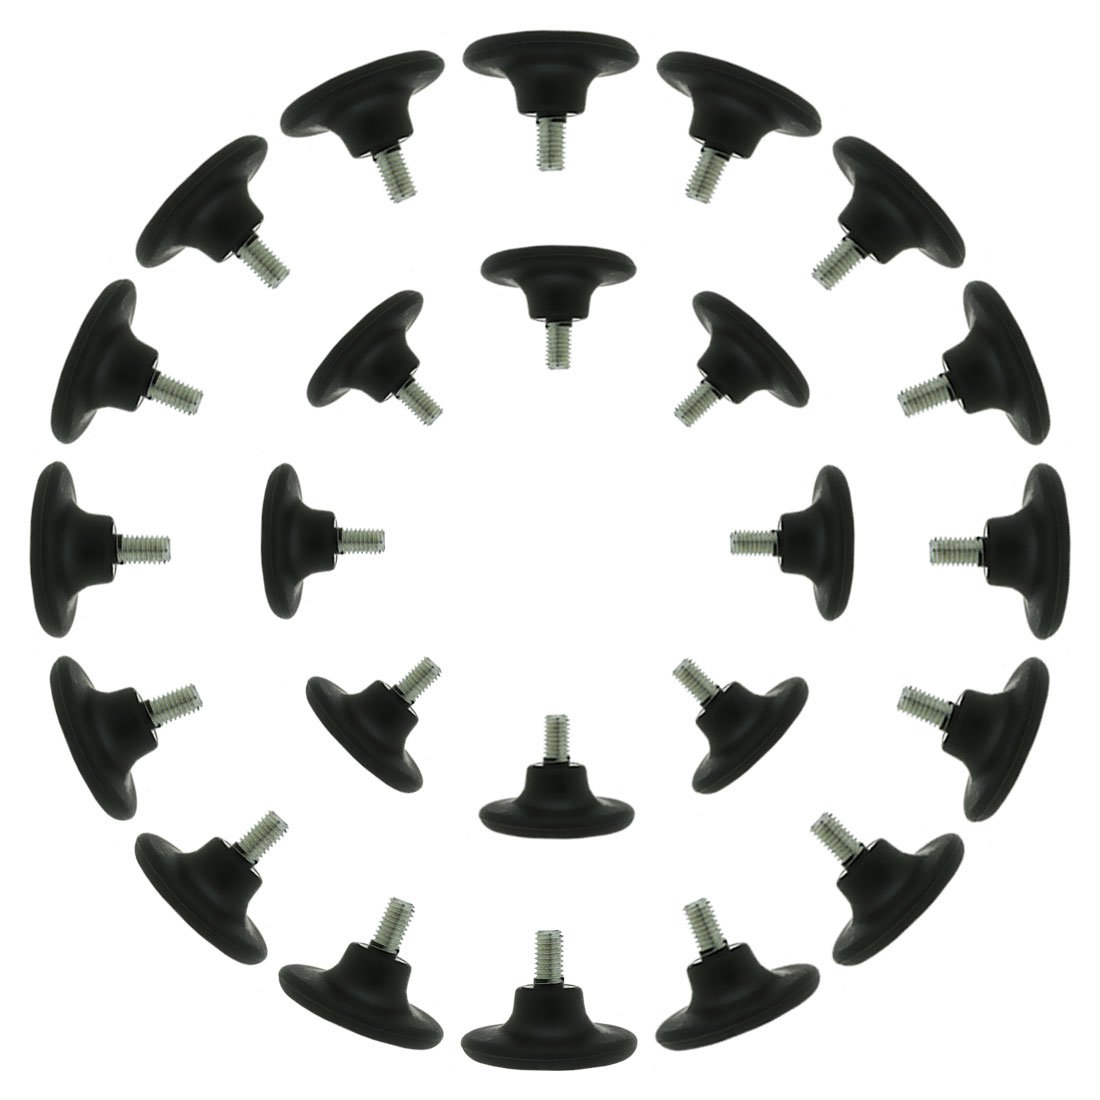 uxcell M8 x 15 x 45mm Screw on Furniture Glide Leveling Feet Floor Protector Adjustable Leveler for Chair Leg 24 Pack